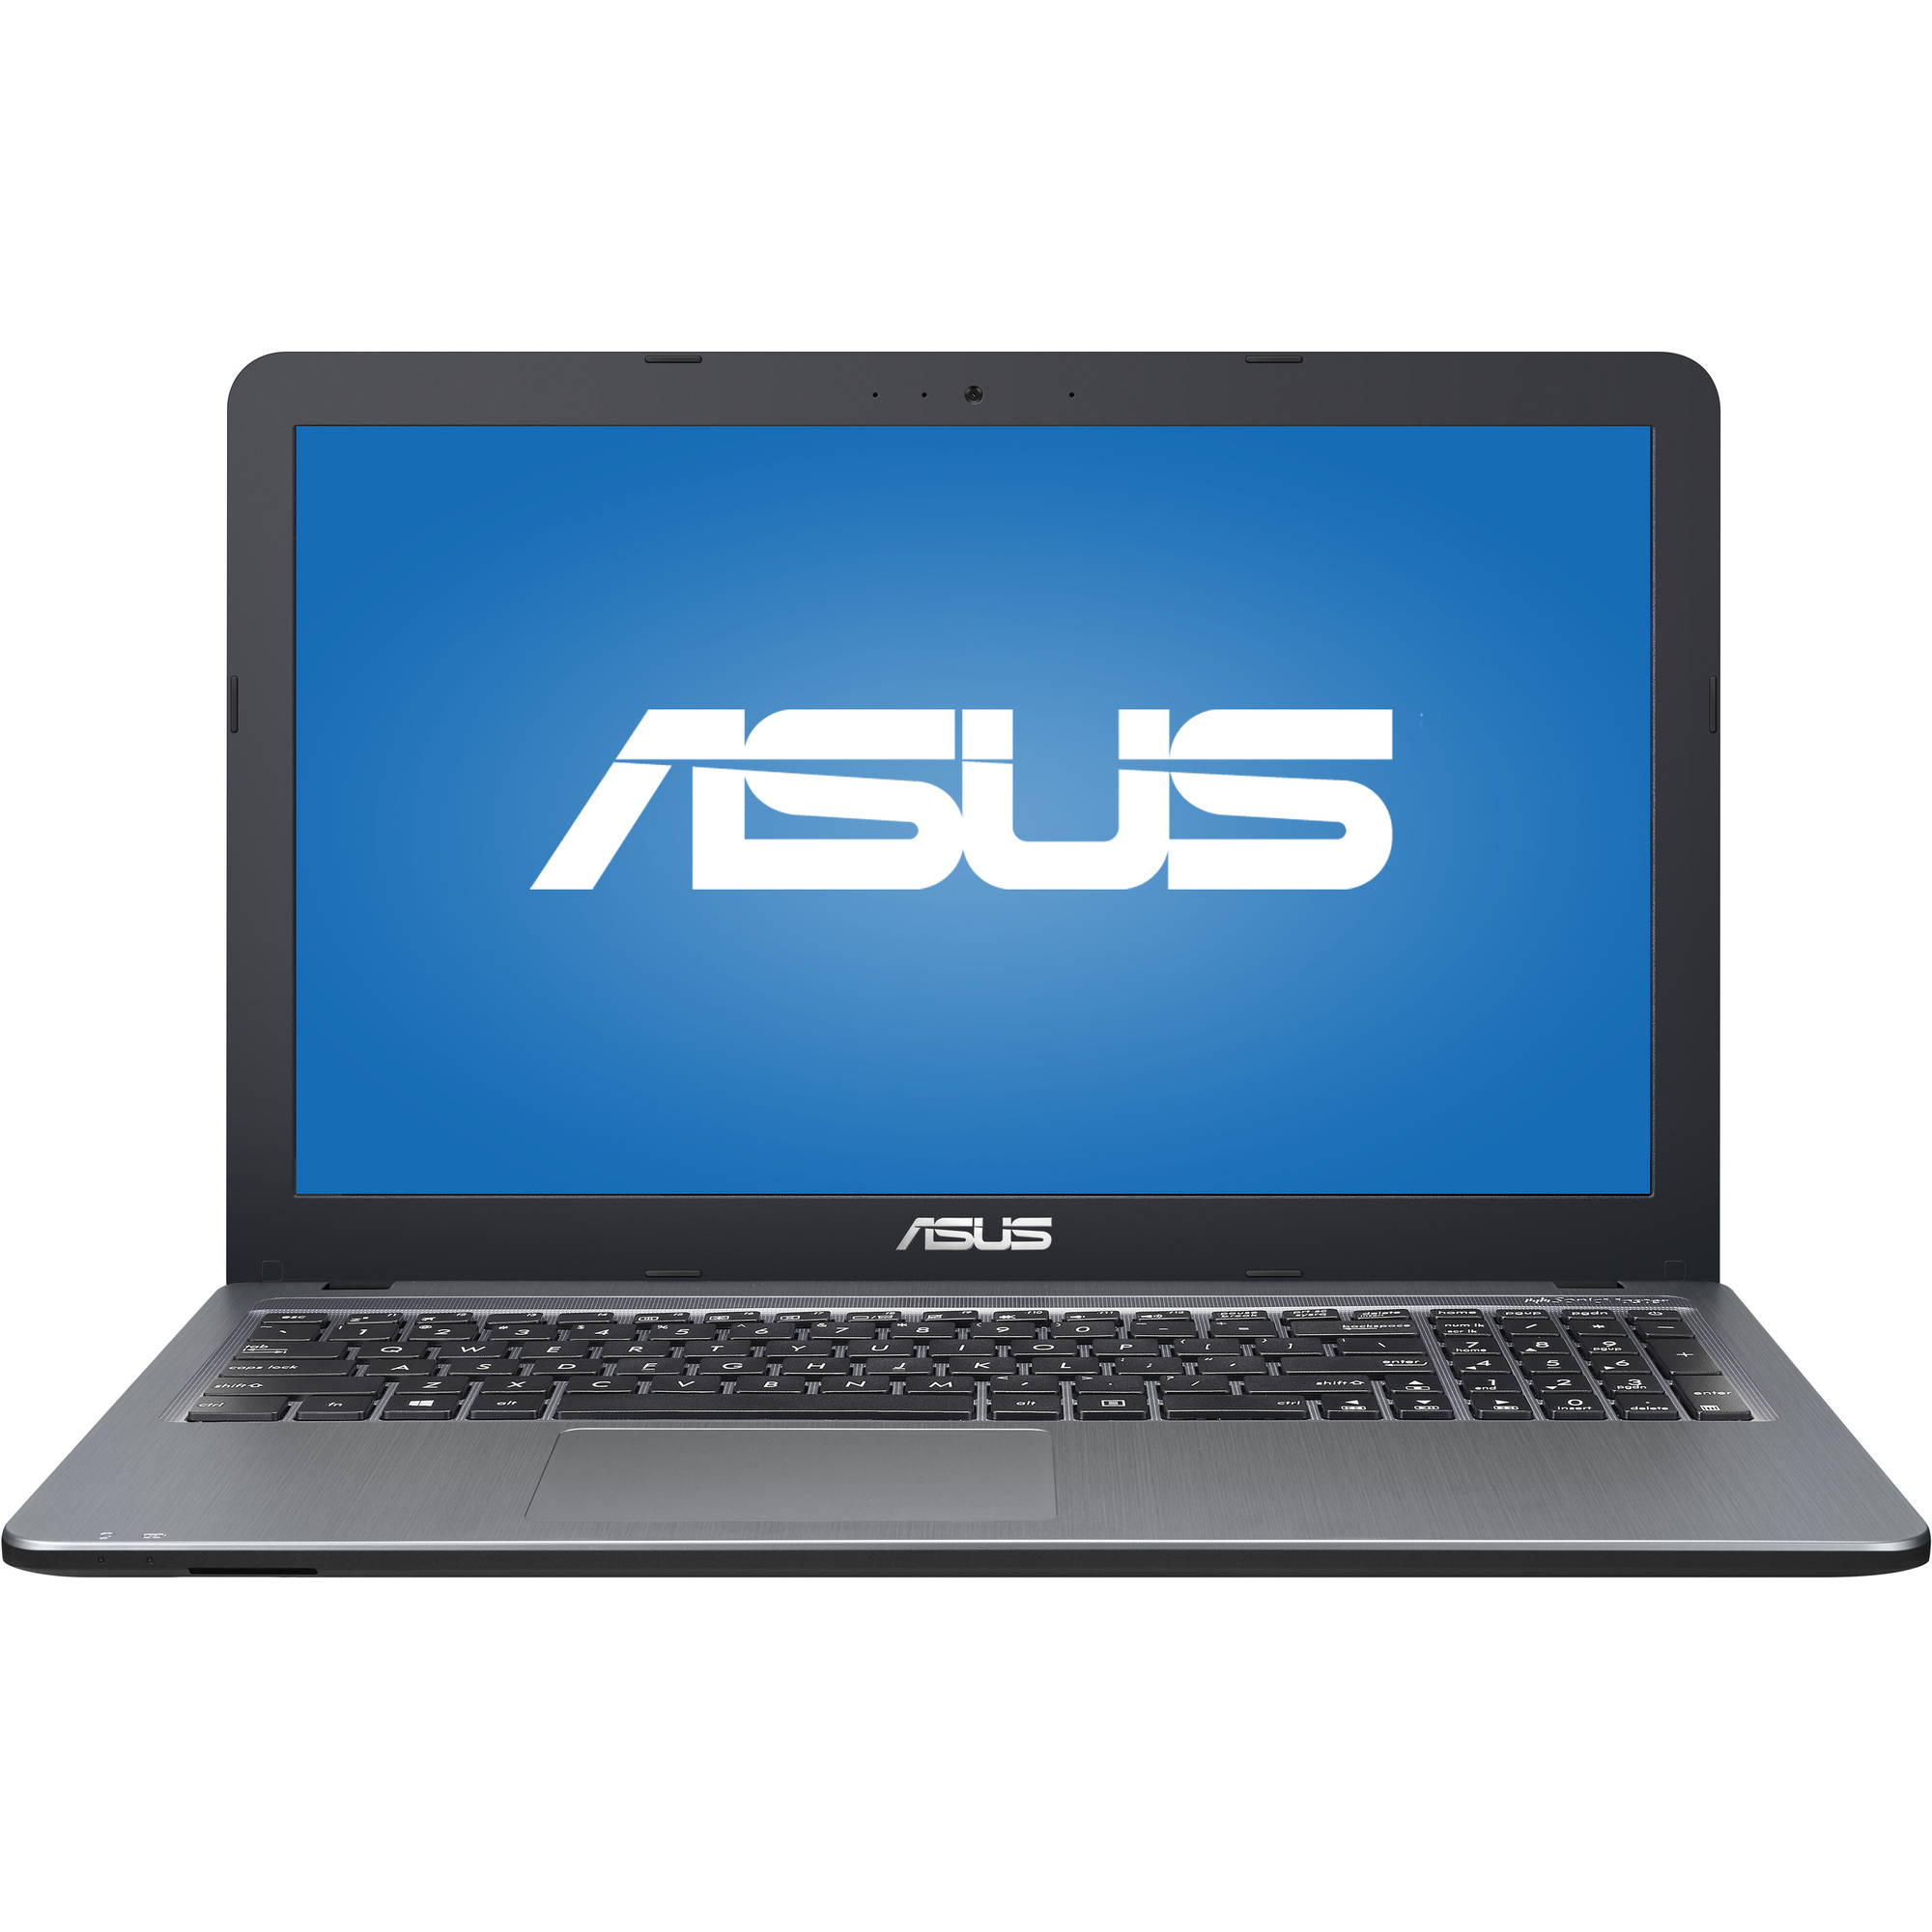 "ASUS X540SA-RBPDN09 Notebook Computer 15.6"" HD, Intel N3710, SMDVDRW, 802.11n, Windows 10, UMA, 4GB, 1TB"